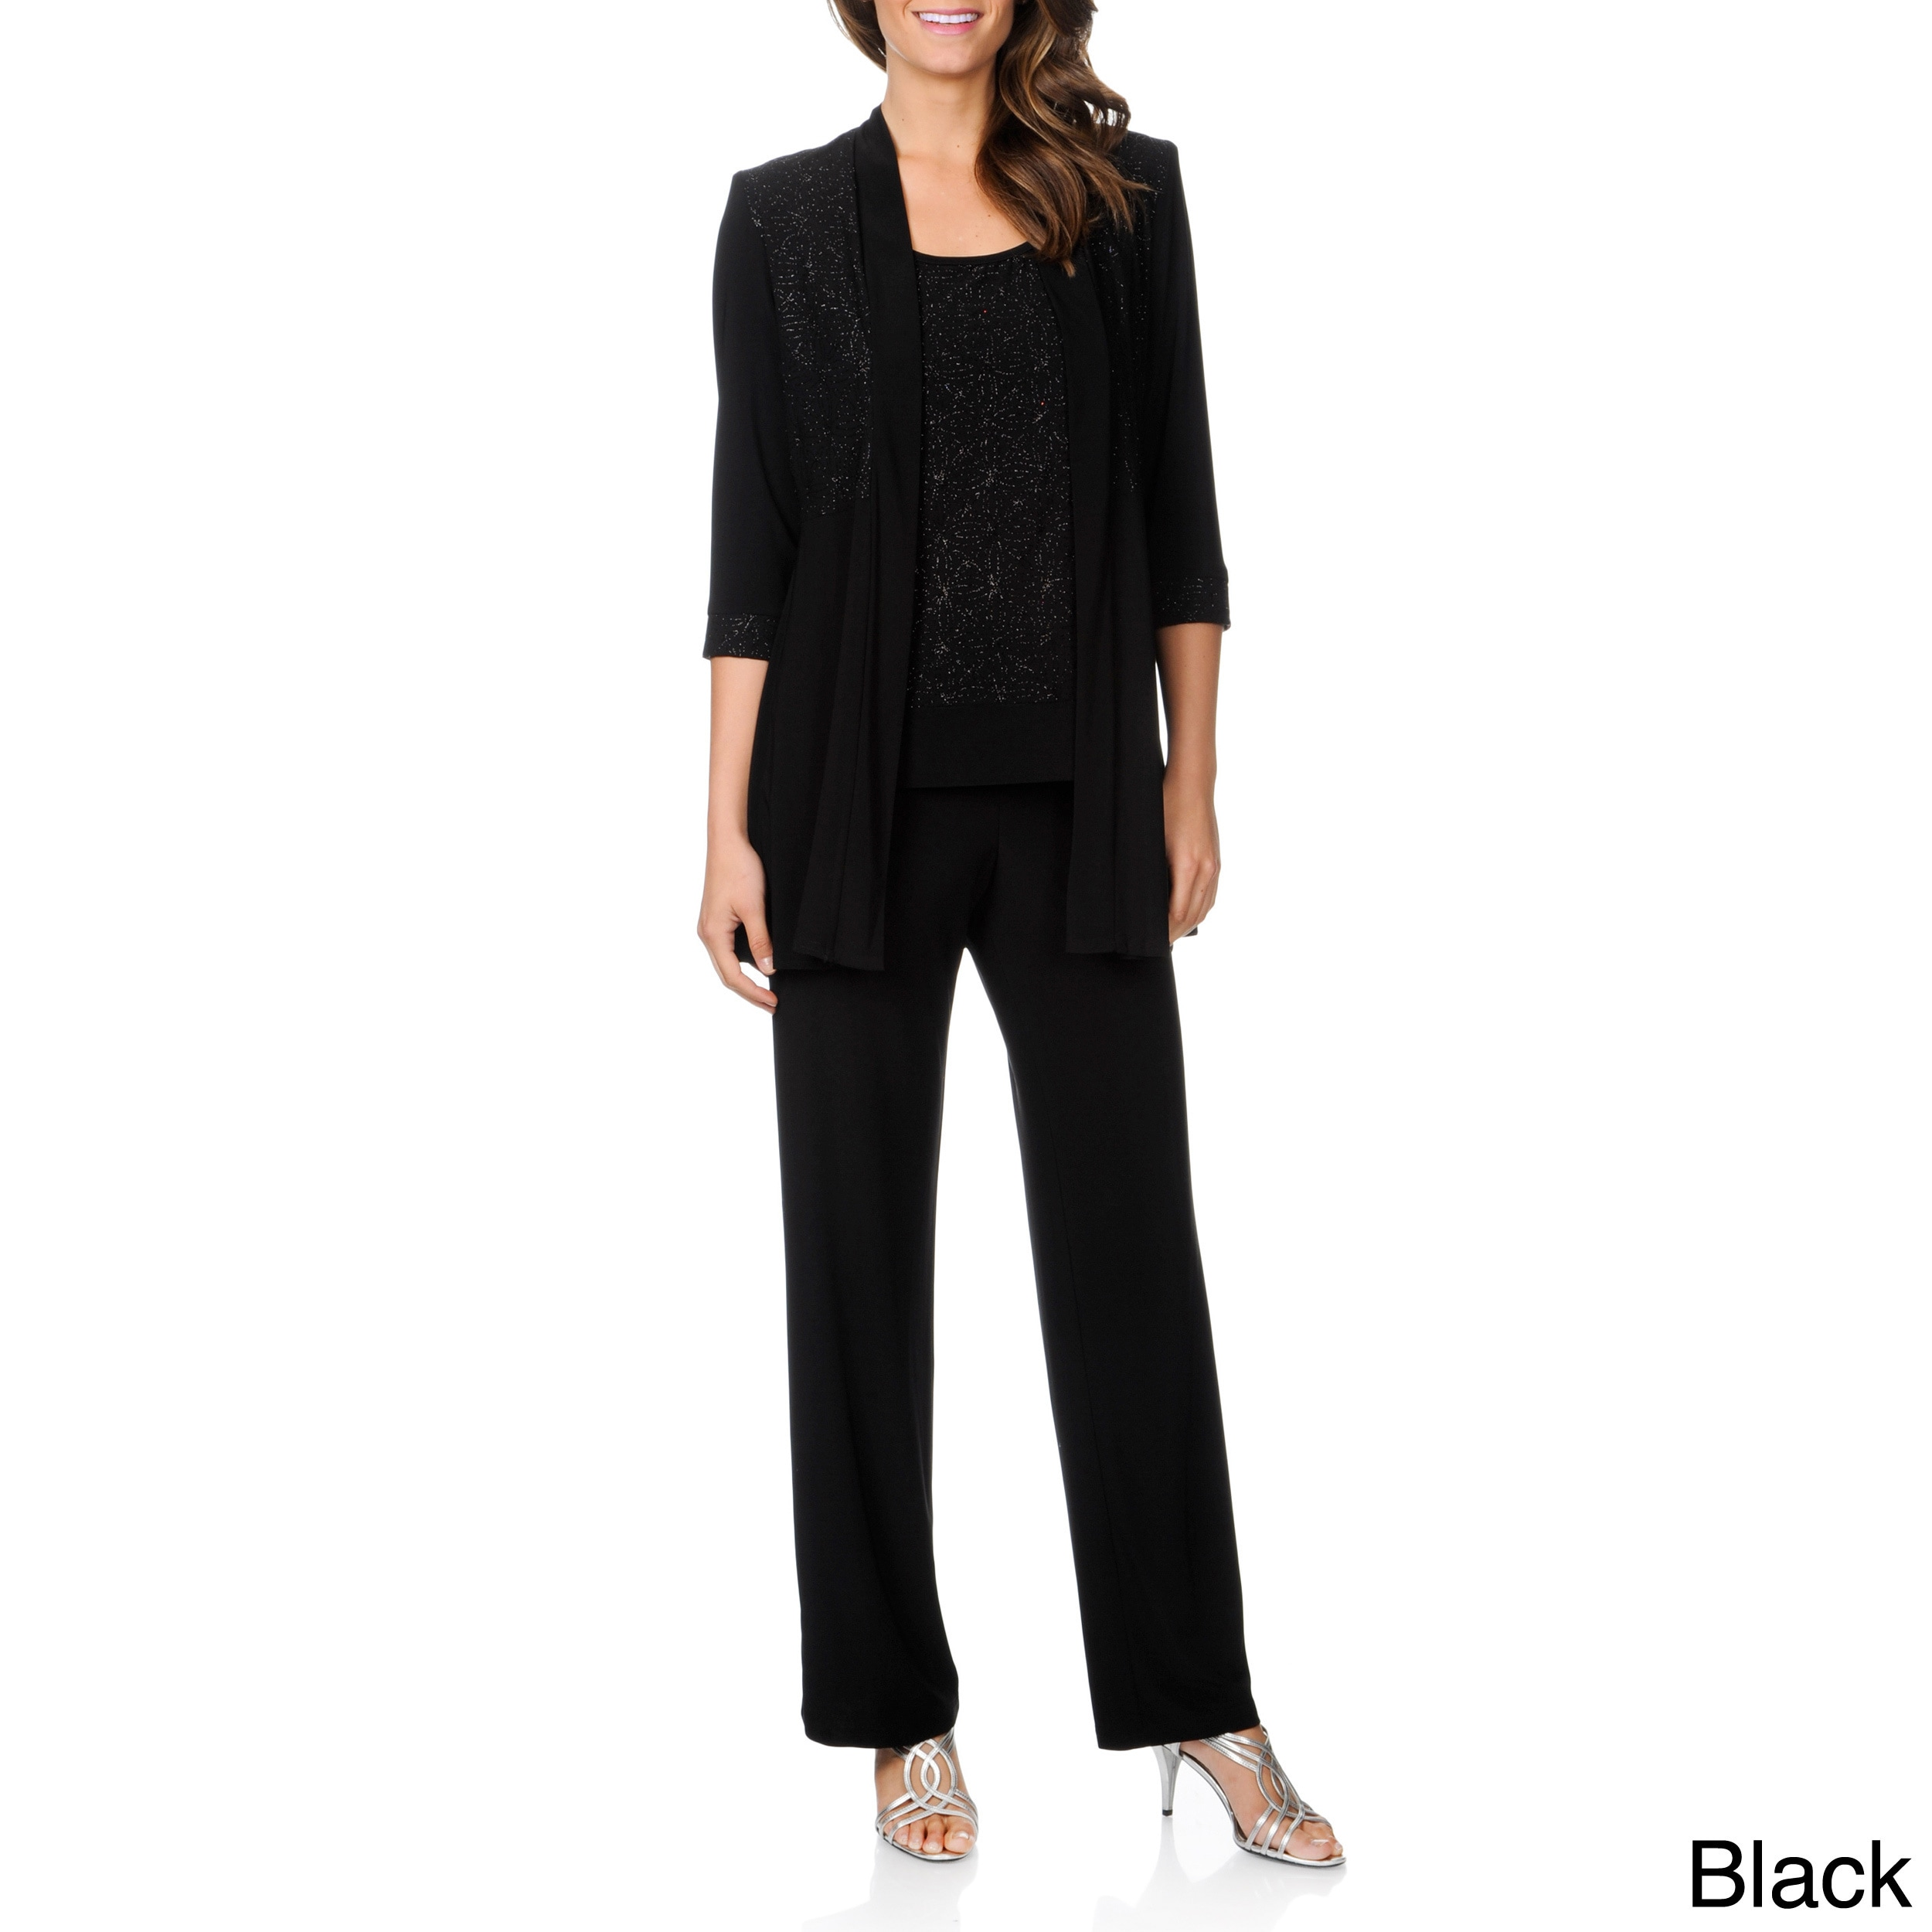 9ad3148fca95 Shop R M Richards Women s Mock 2-piece Pant Set - Free Shipping Today -  Overstock - 8481351